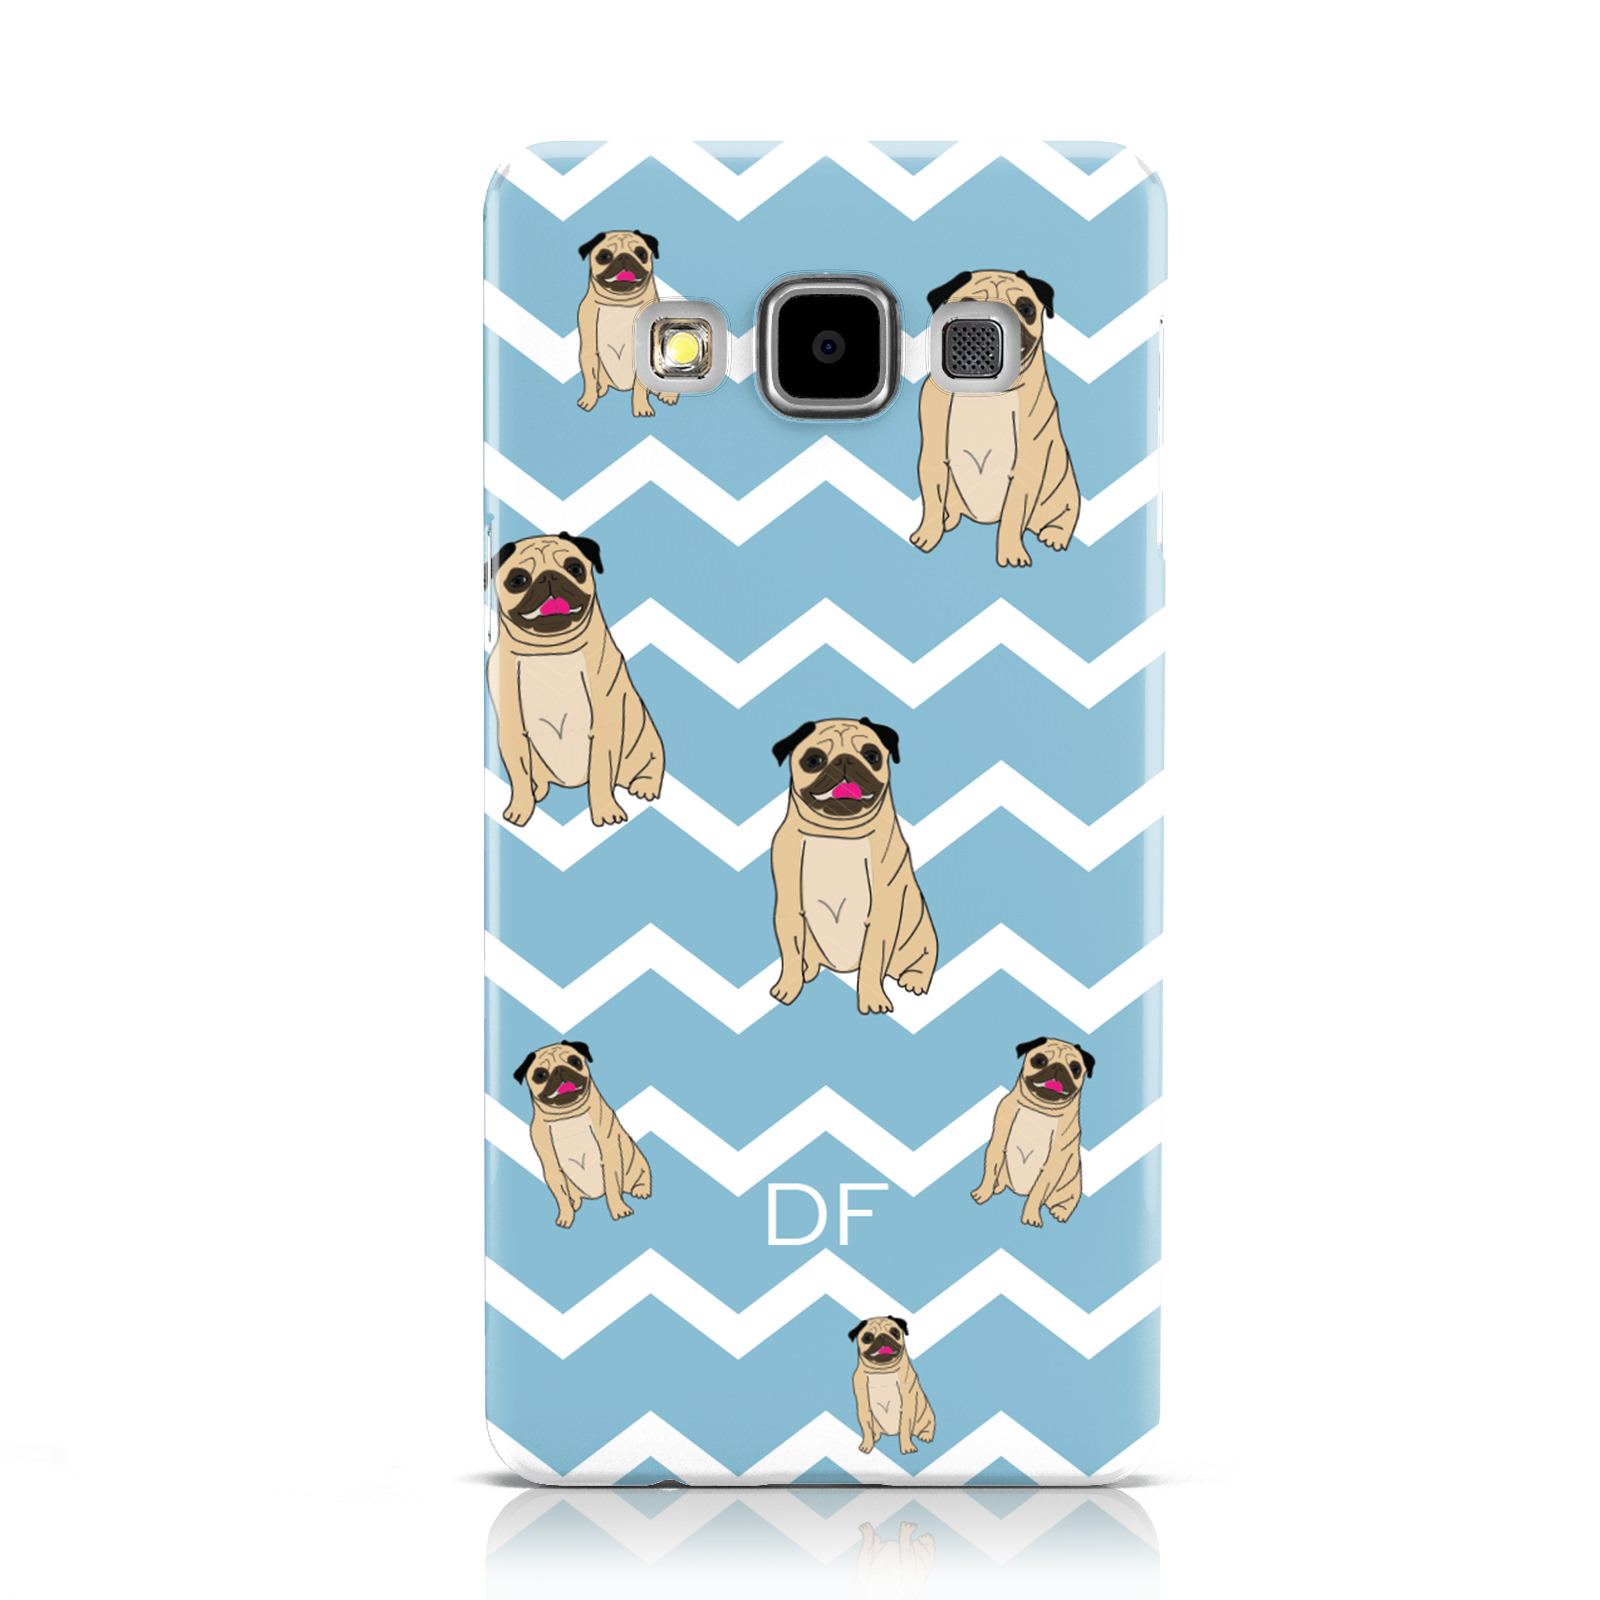 DYEFOR-PERSONNALISE-CARLIN-INITIALES-COQUE-POUR-SAMSUNG-GALAXY